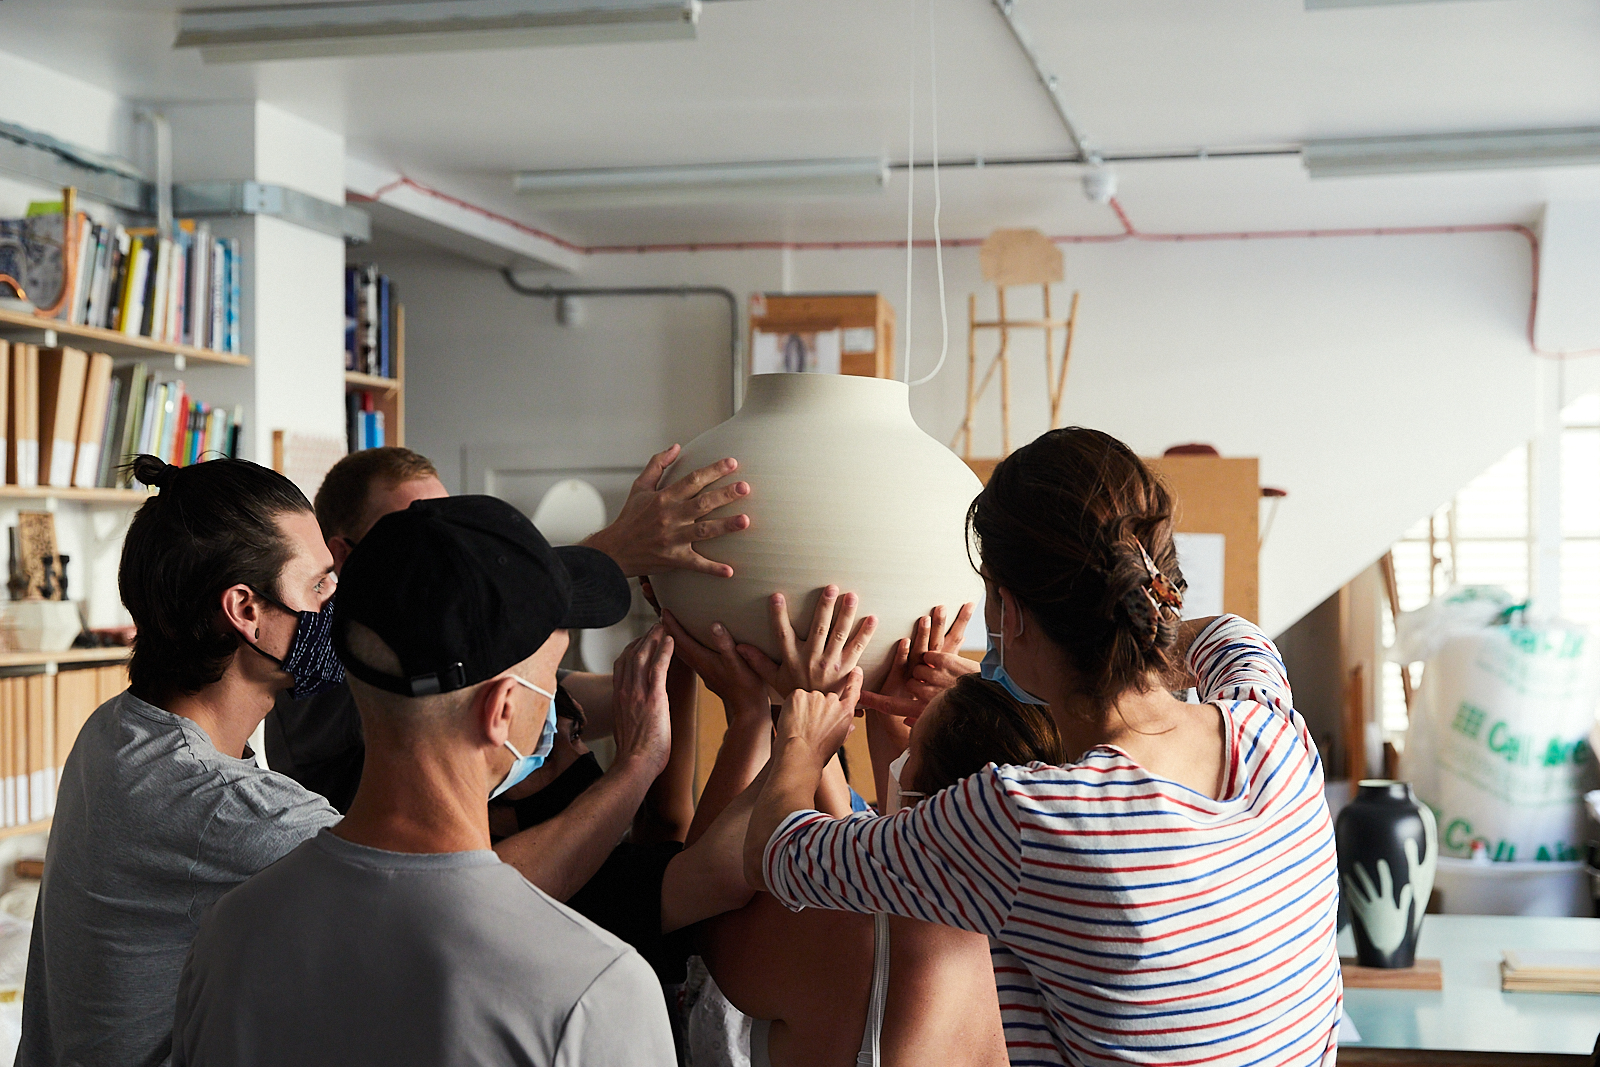 A team rehearsing the making of a Hold Me vase in the studio